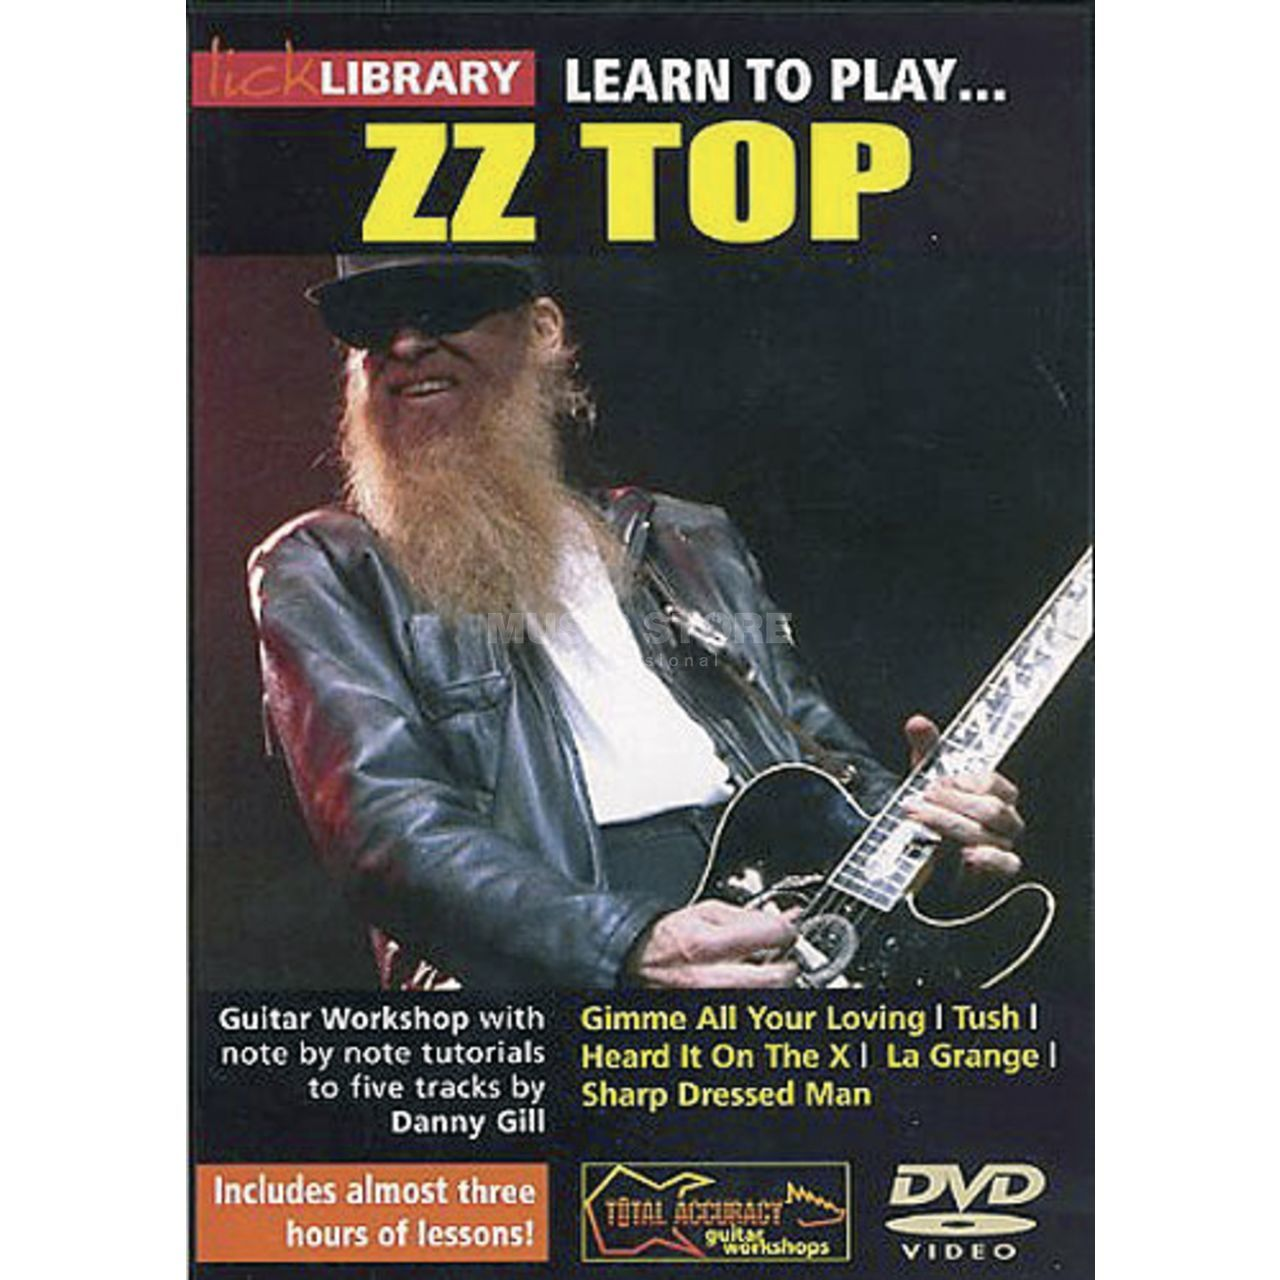 Bass Guitar Lessons DVDs - Which Are the Best?